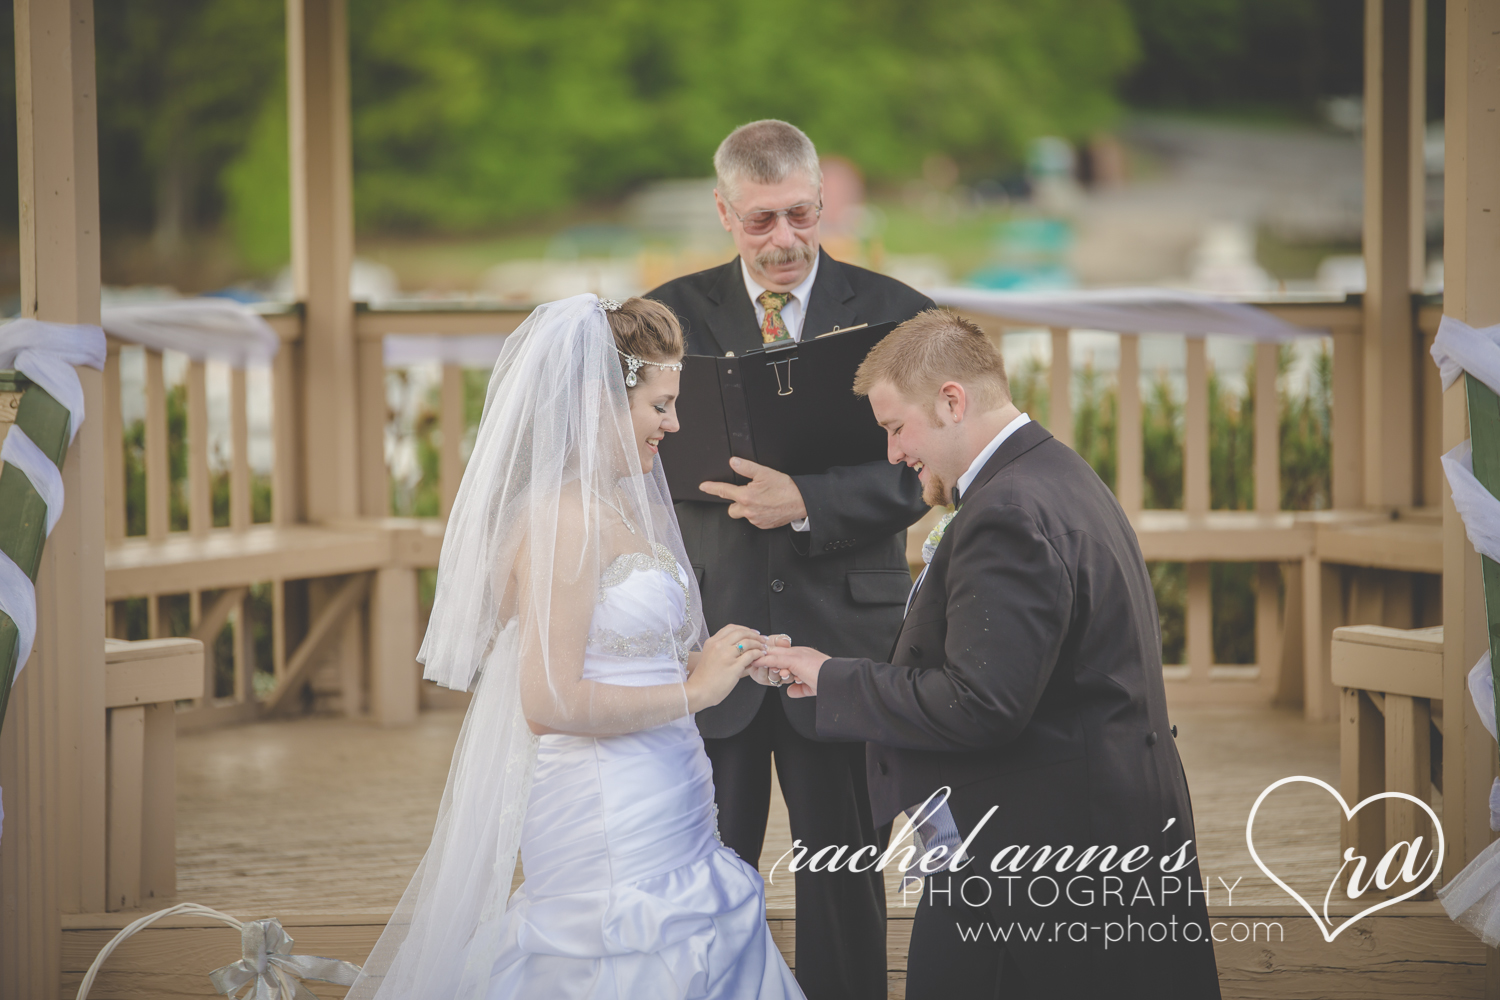 007-MAH-STYLE-TREASURE LAKE WEDDING.jpg